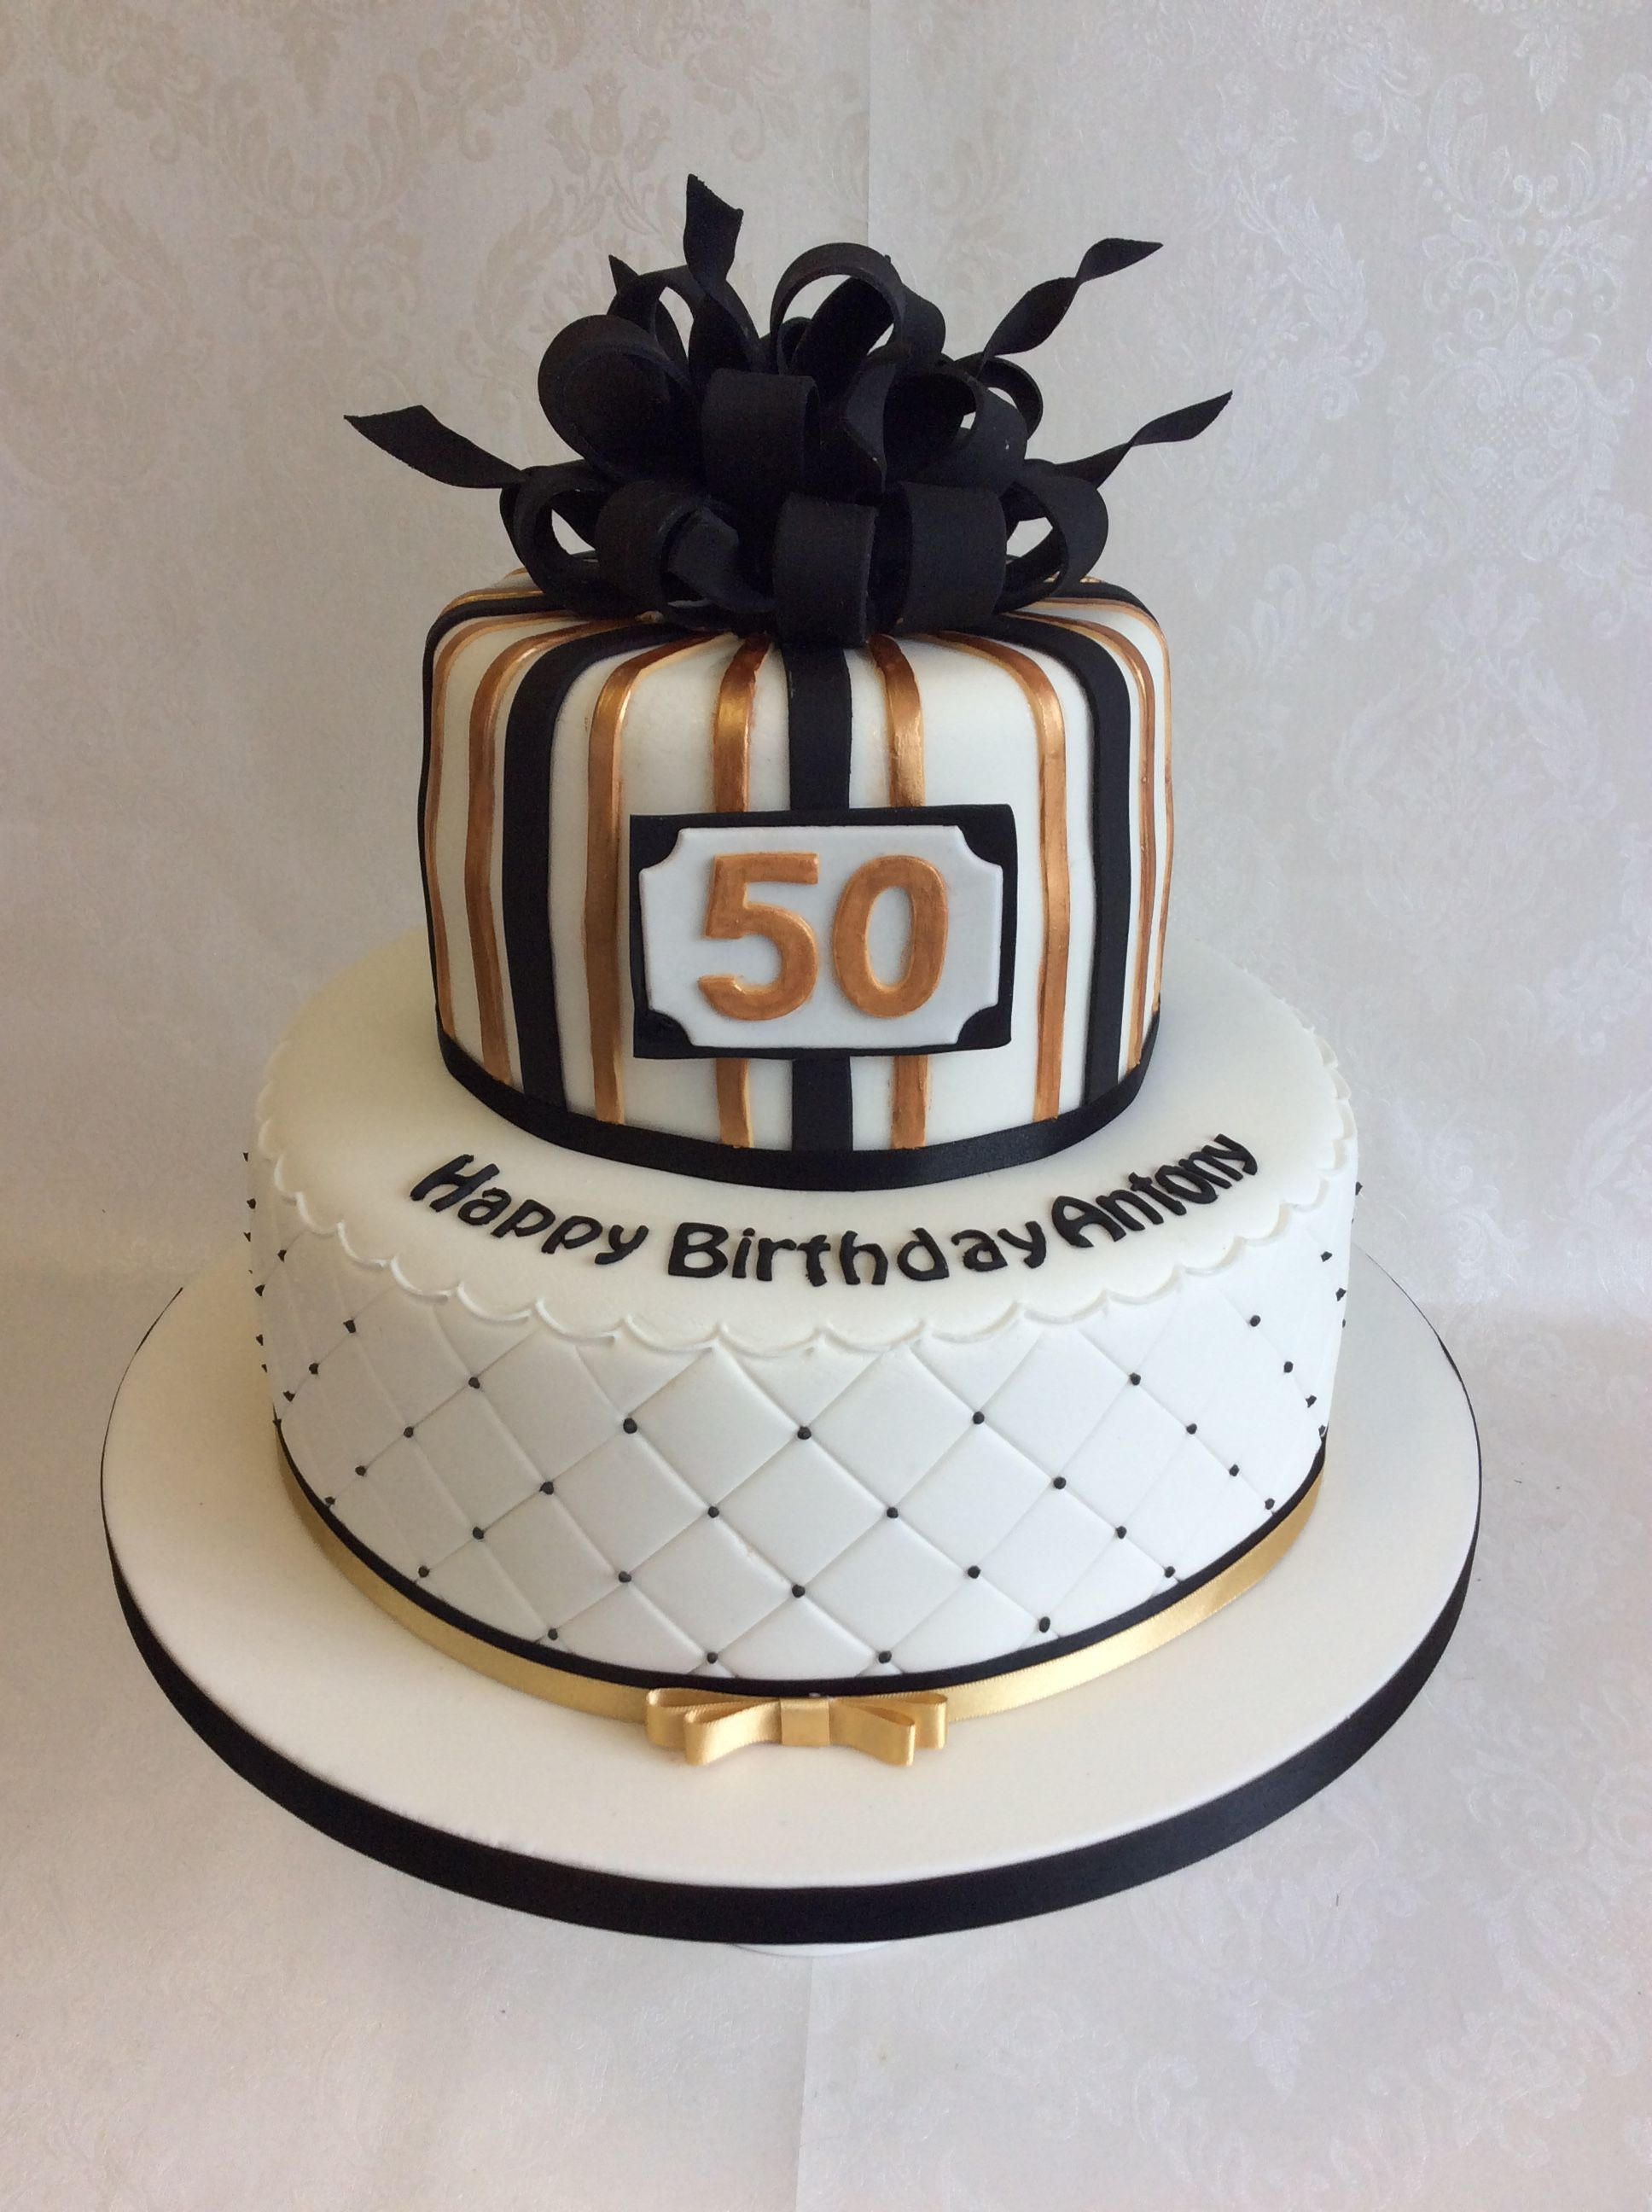 Parcel Style Top Tier For This 2 Tier Black And Gold Themed Birthday